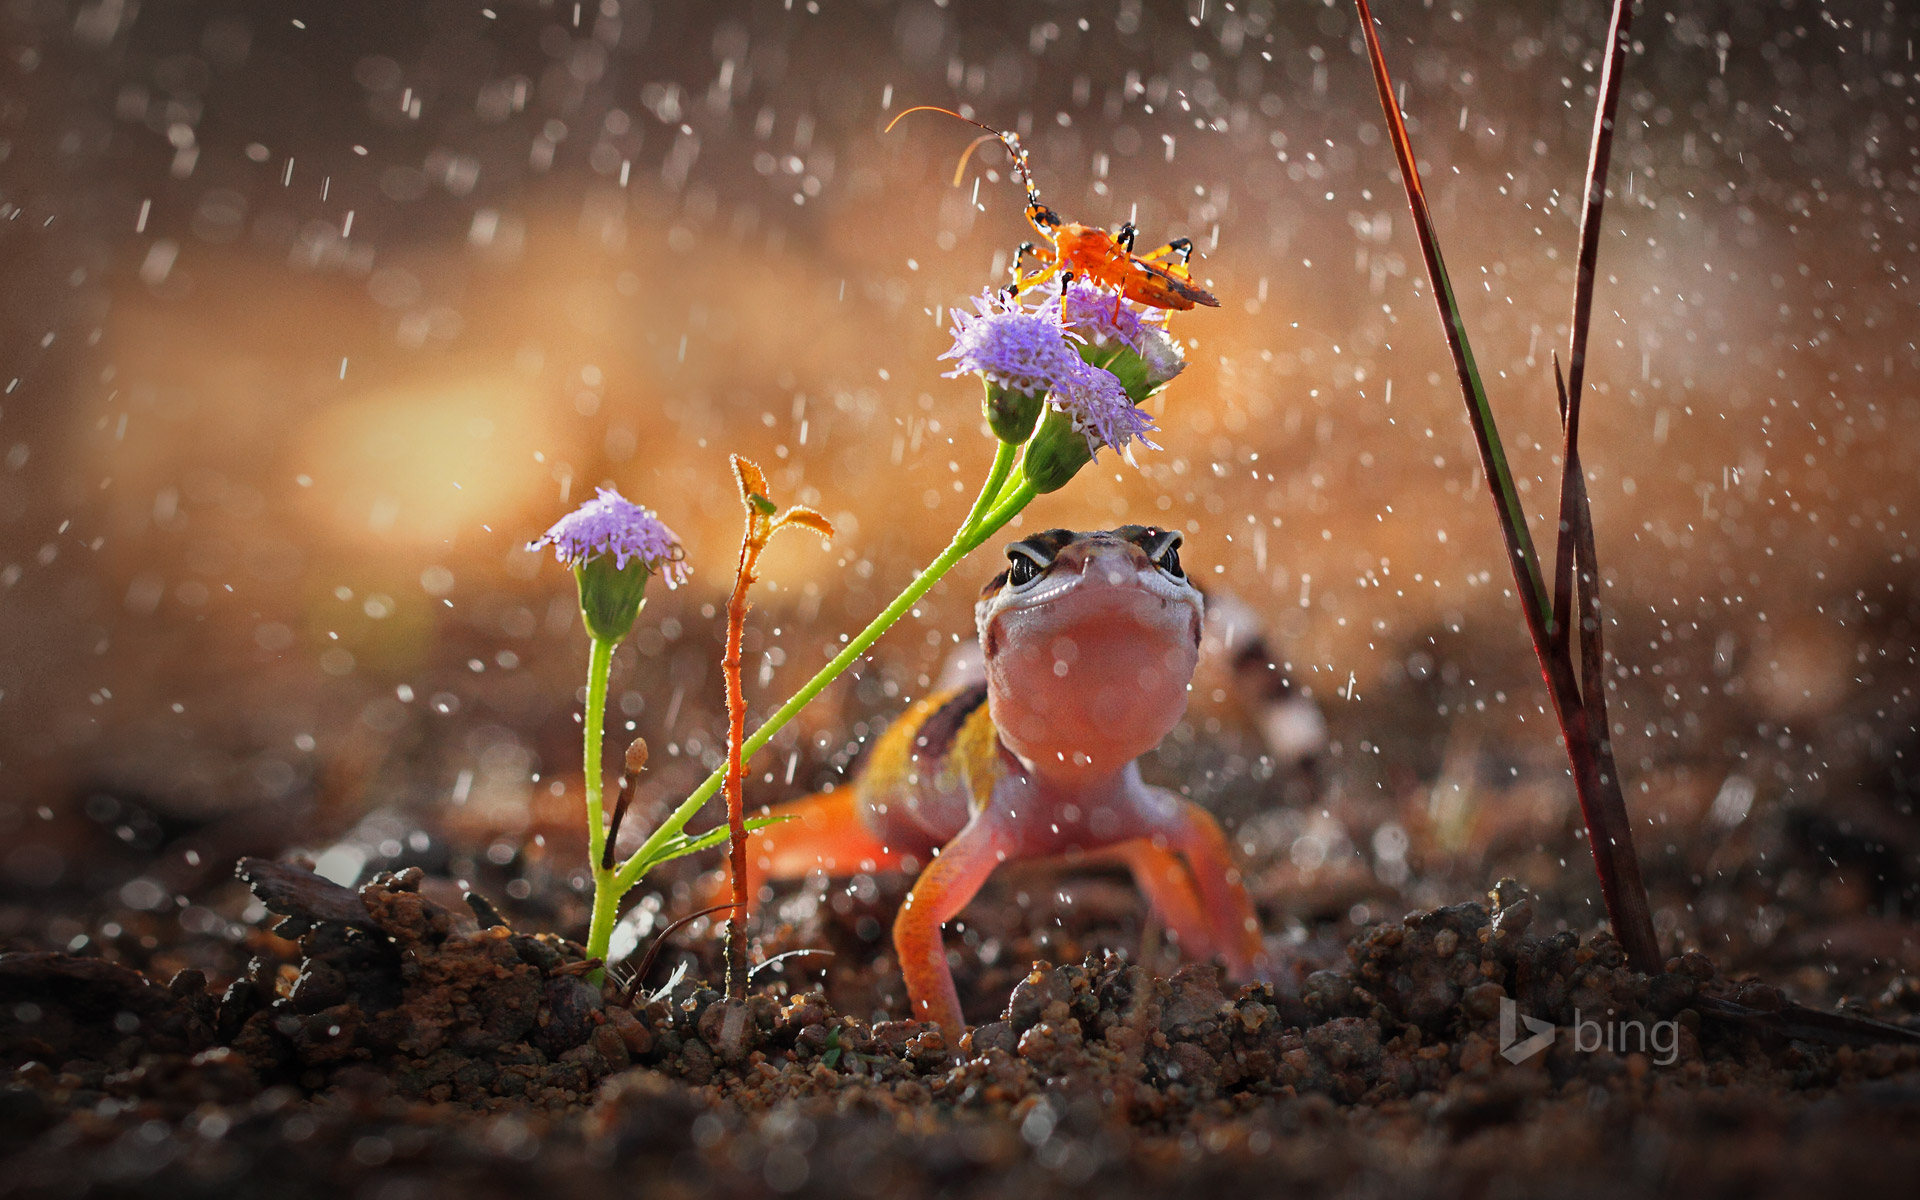 Gecko and insect on rainy day, Indonesia